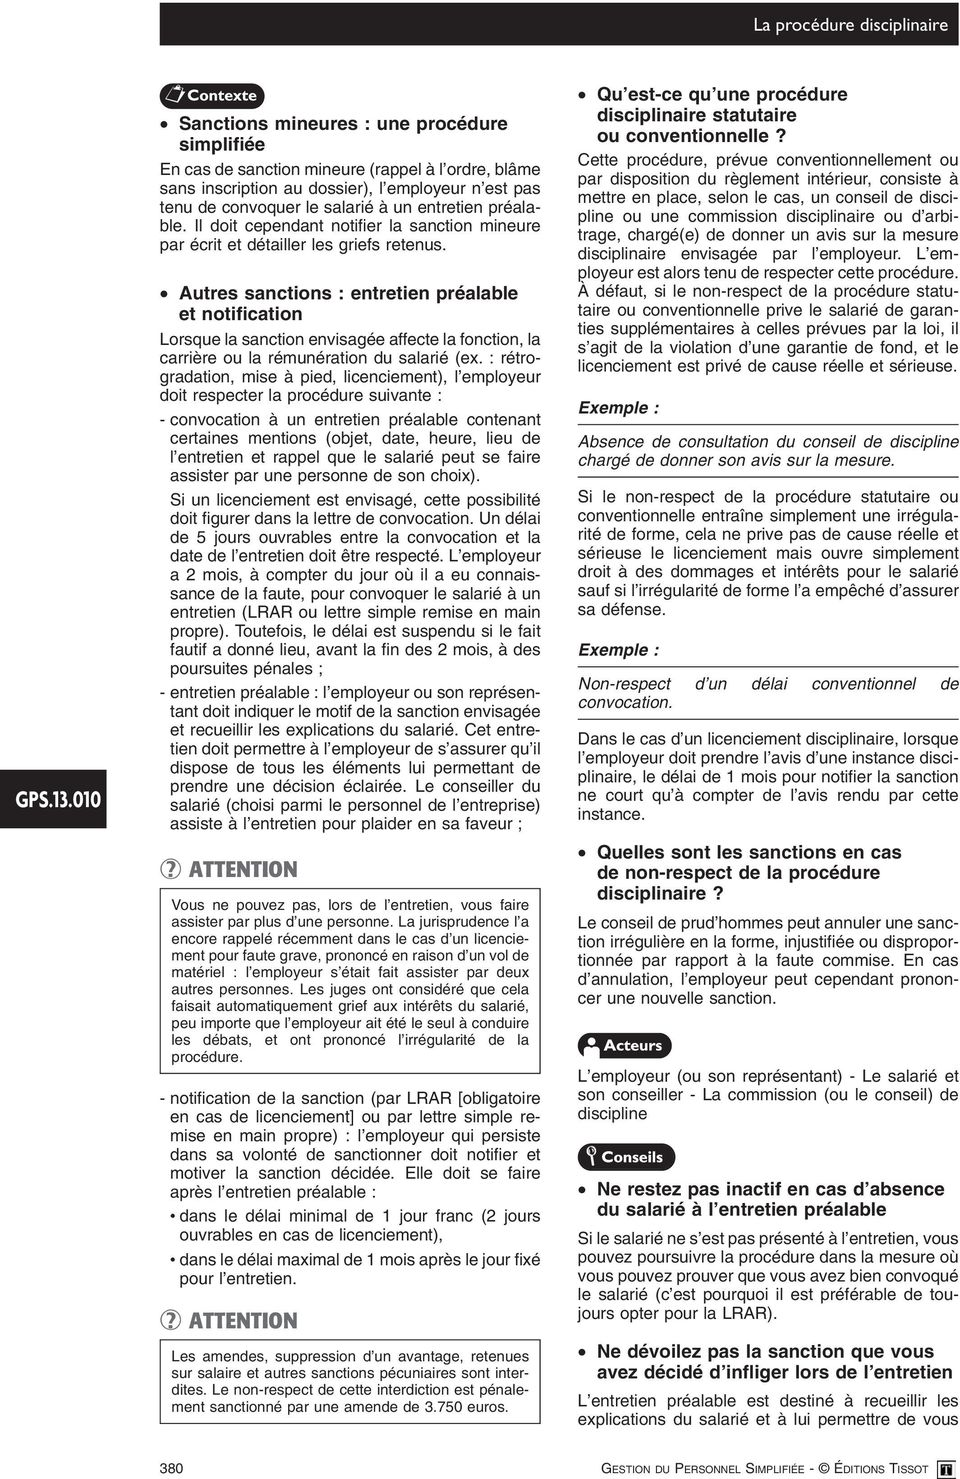 La Procedure Disciplinaire Pdf